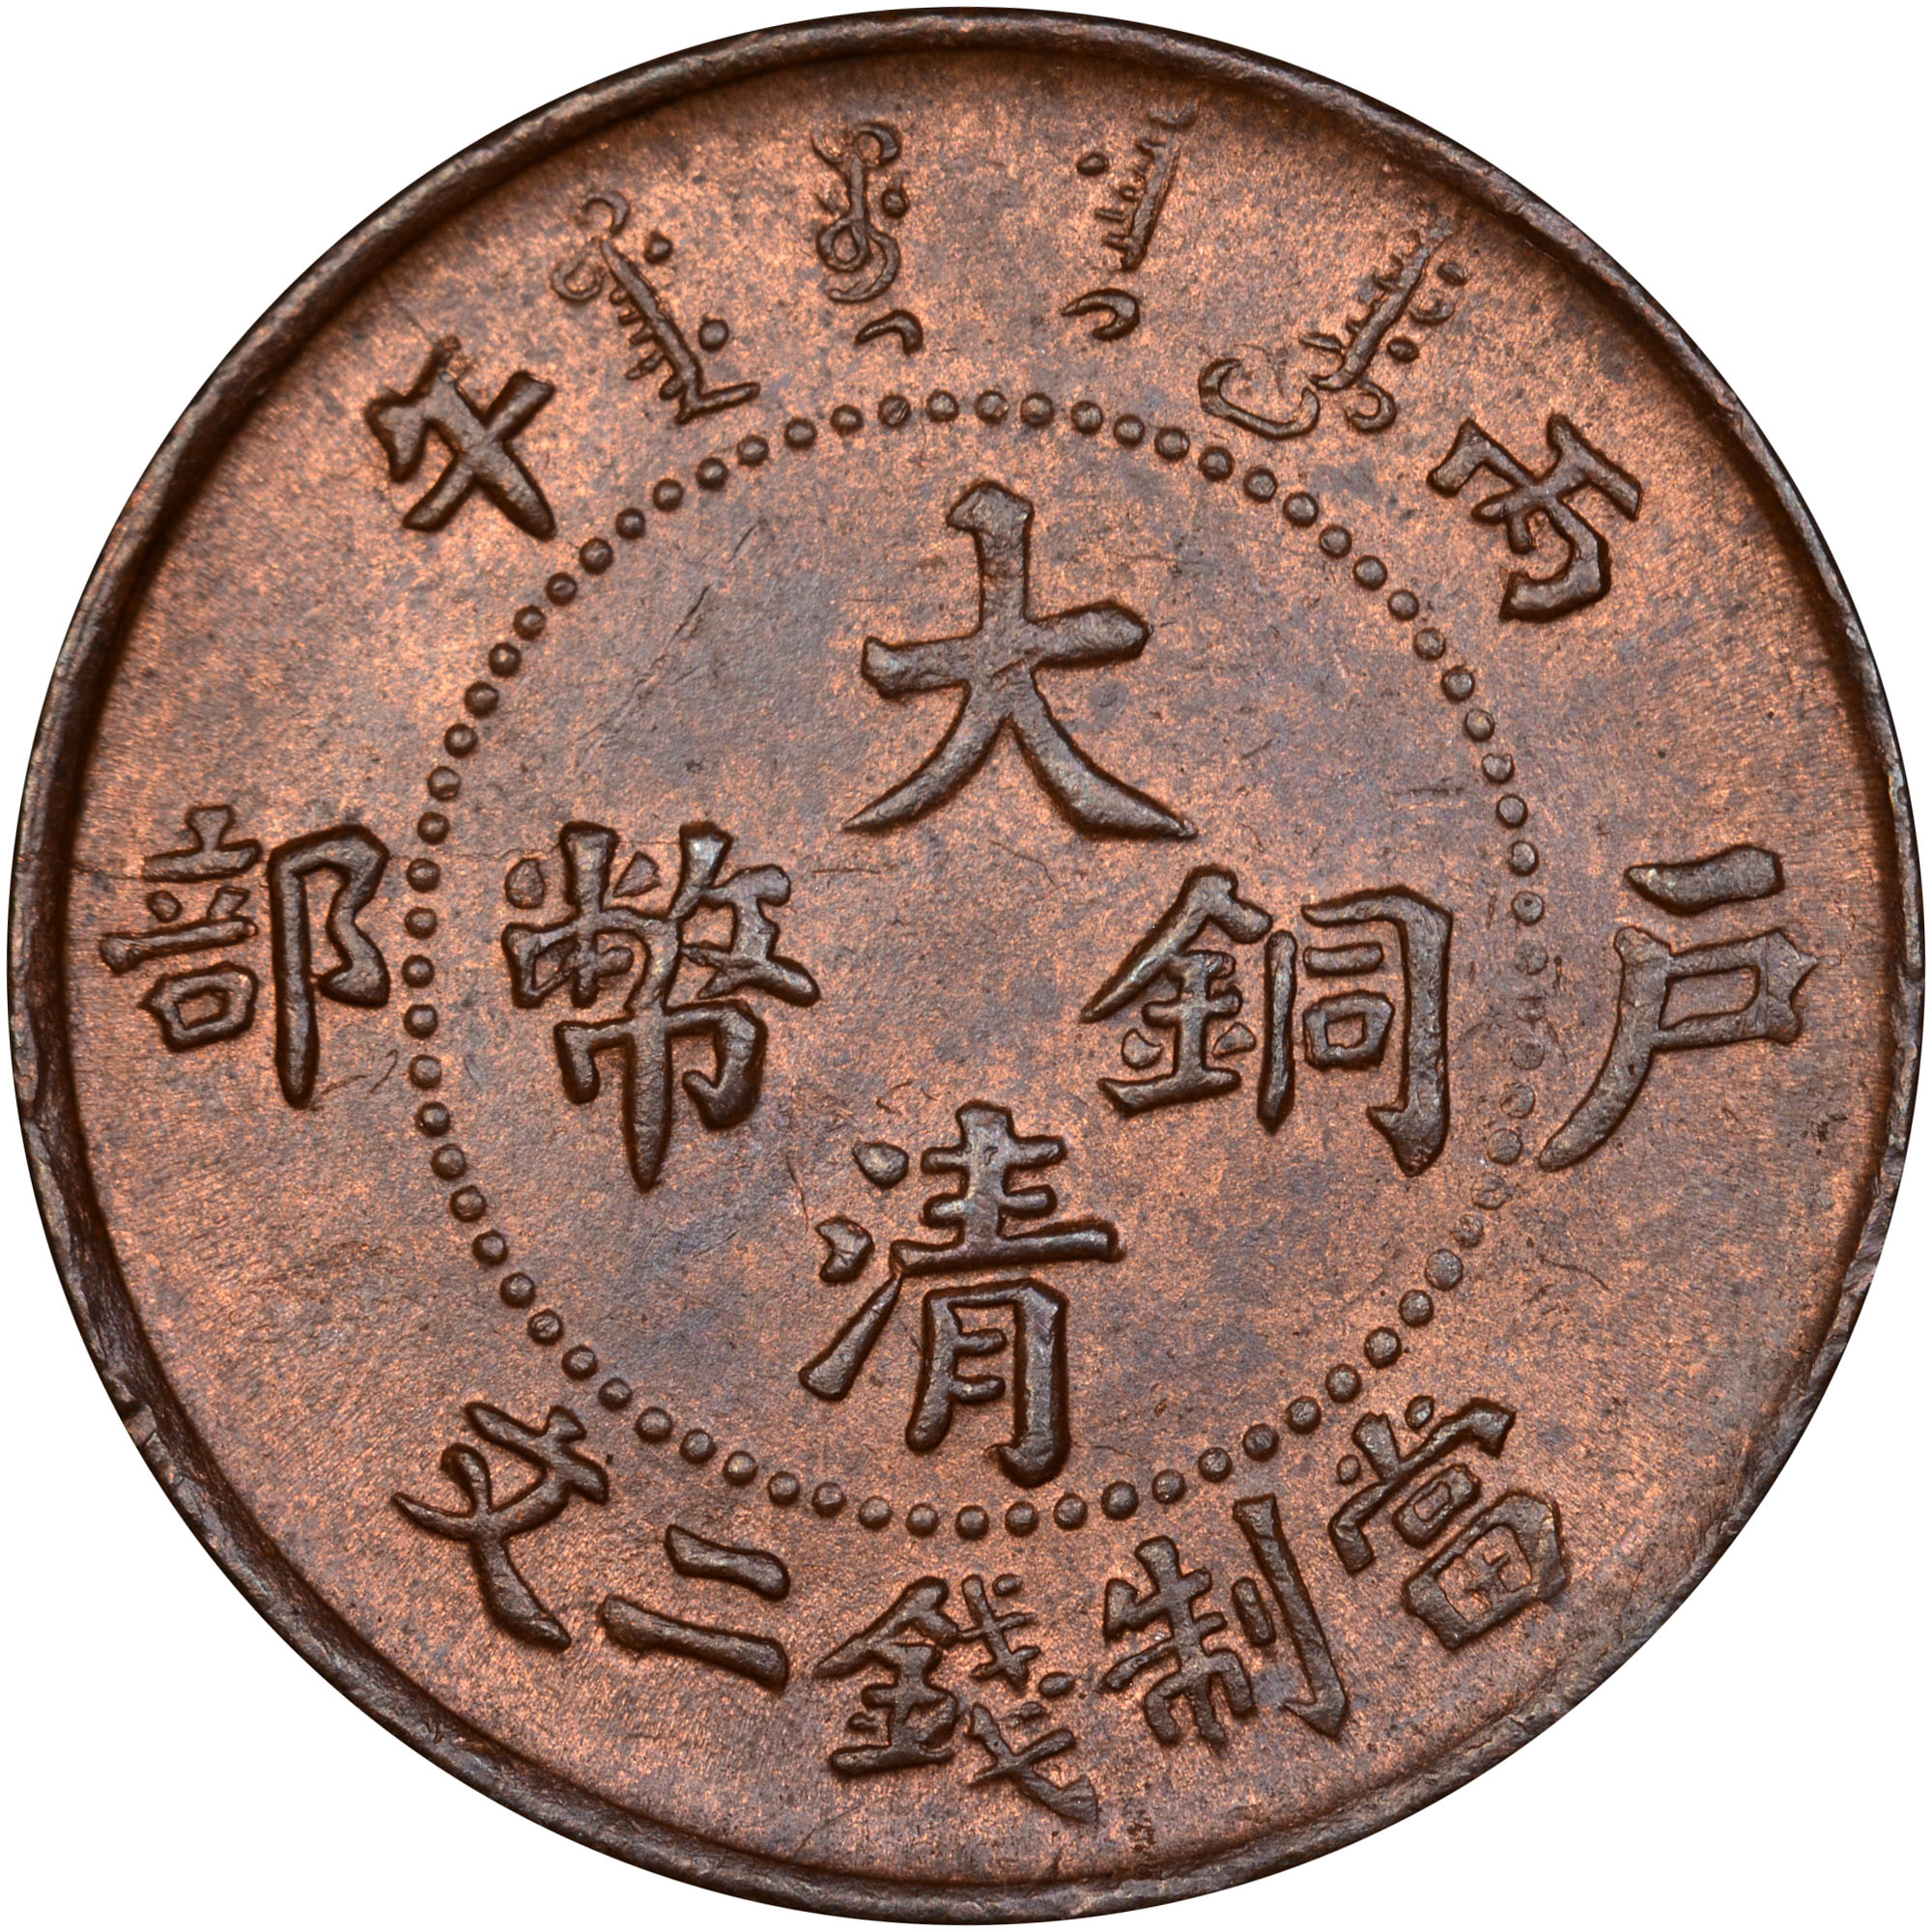 1905-1906 China EMPIRE 2 Cash obverse